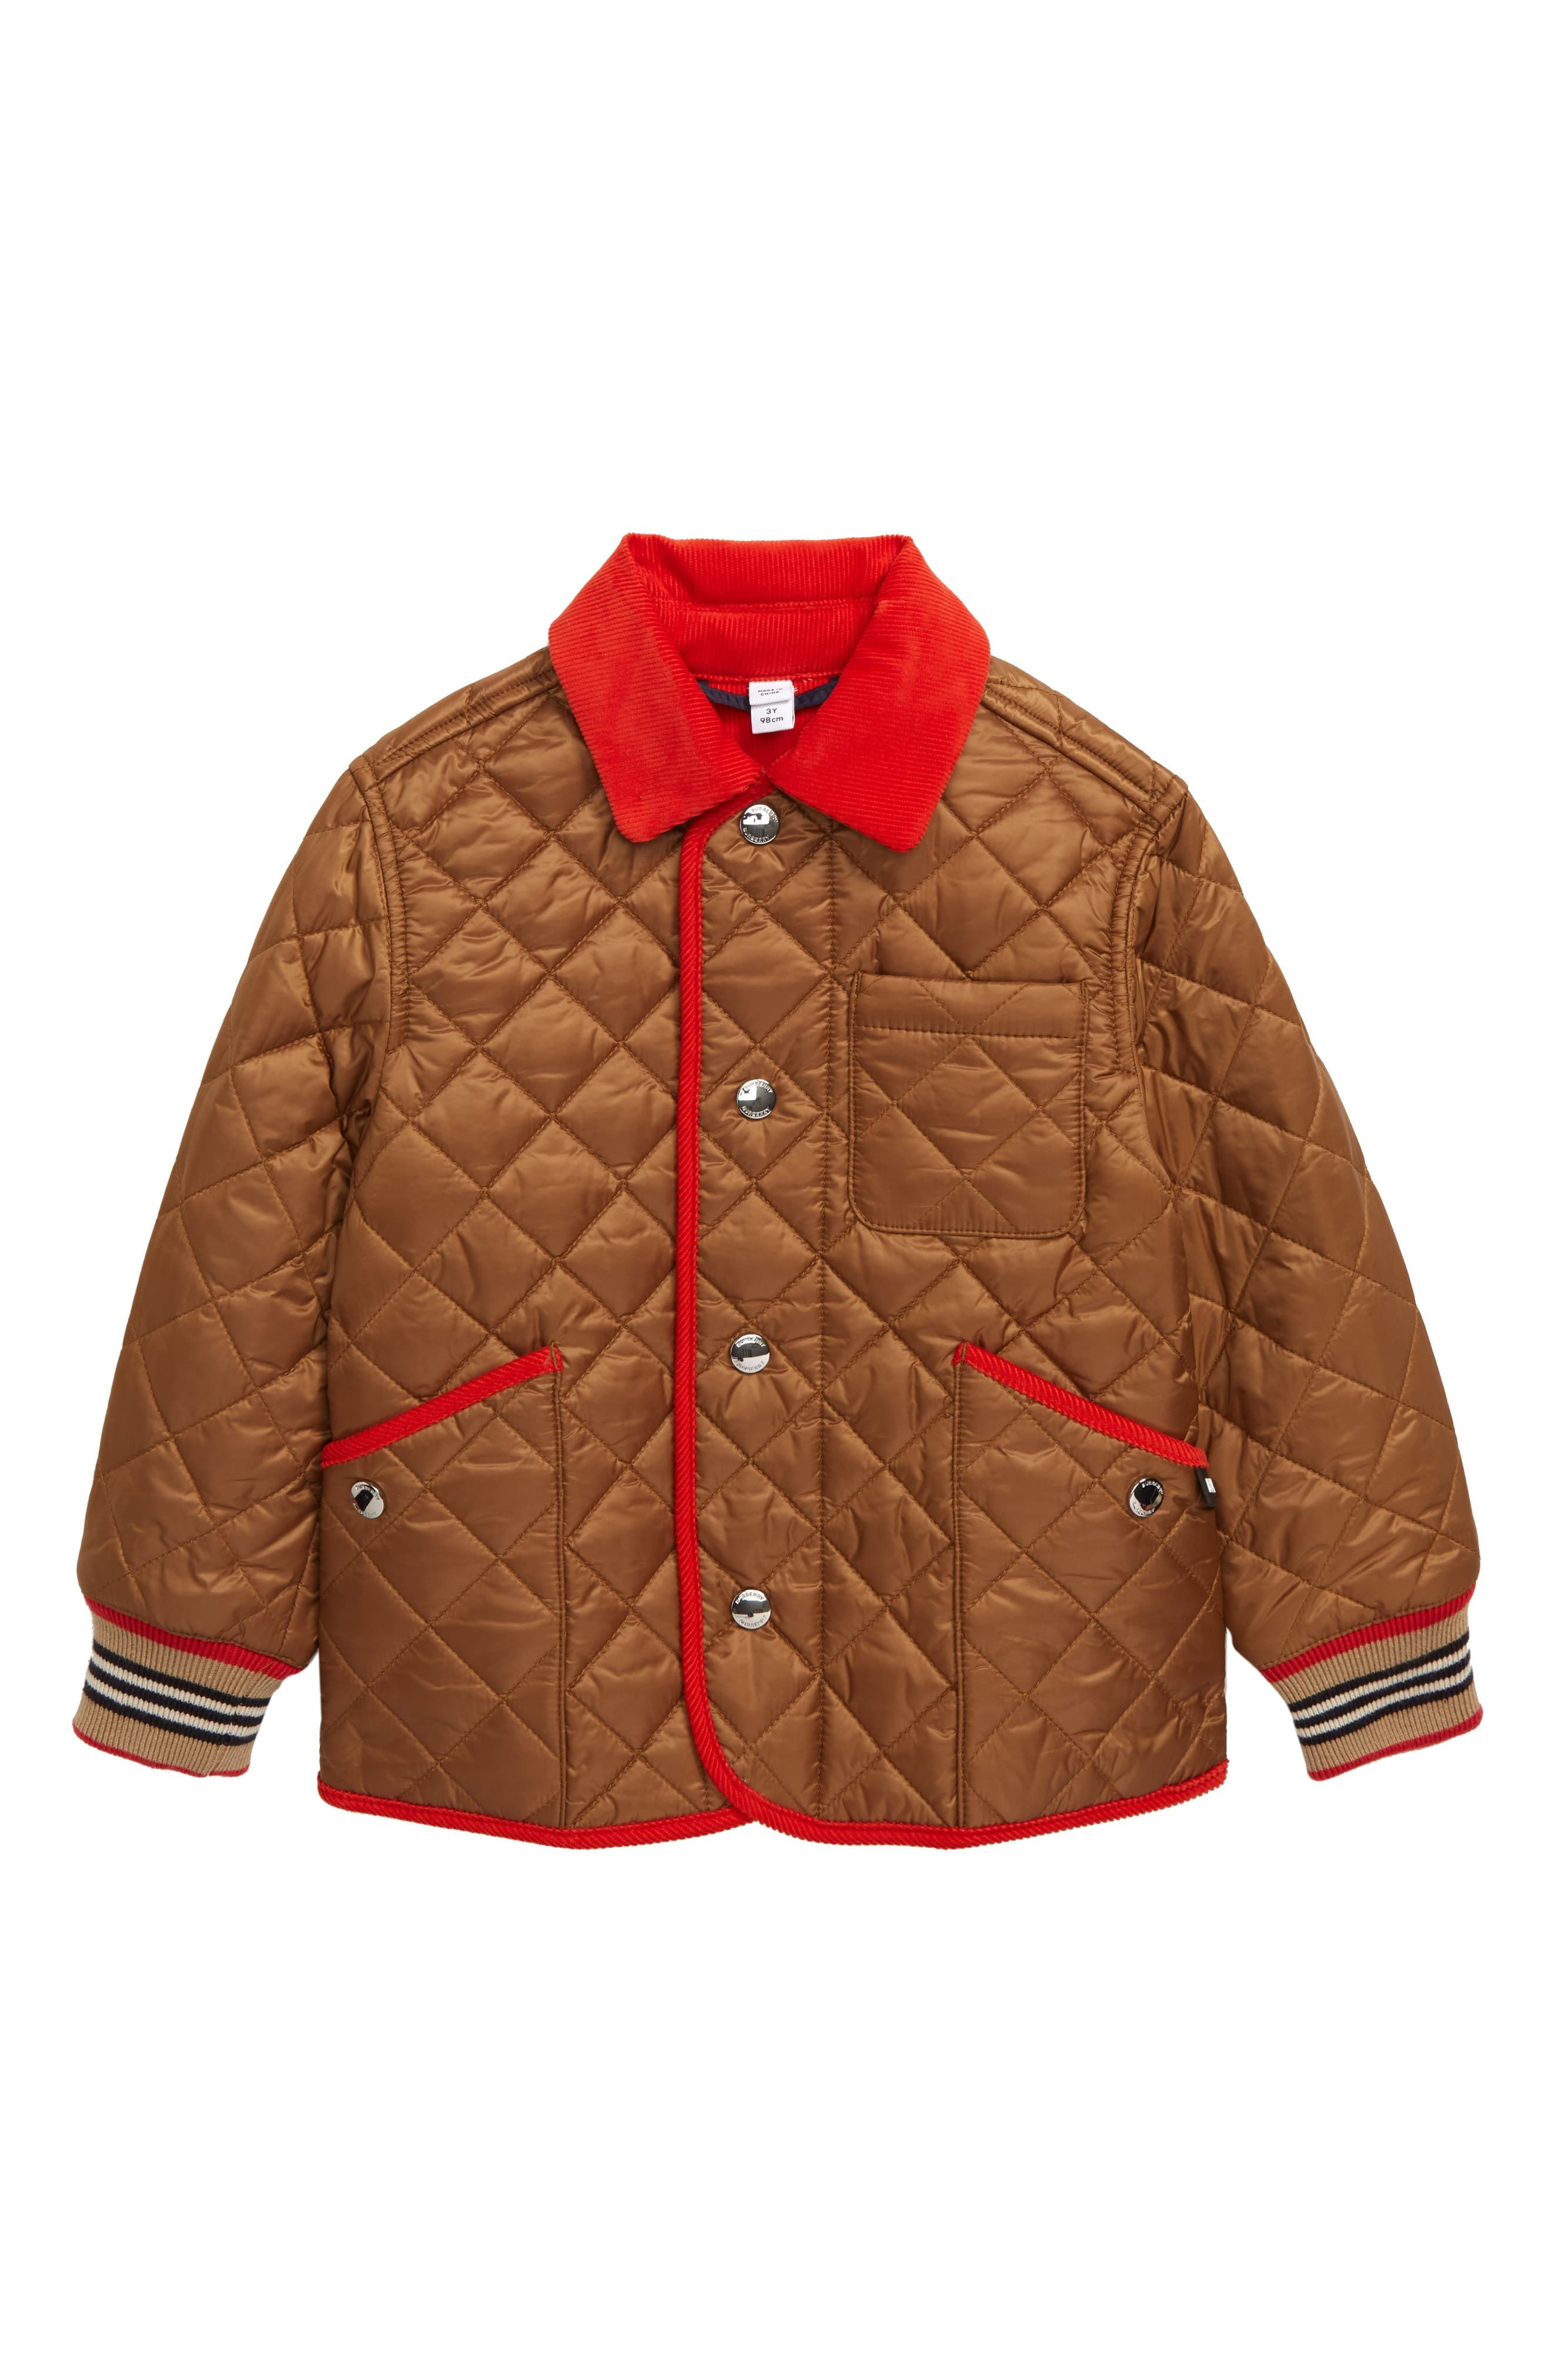 Toddler Boy S Burberry Culford Icon Stripe Trim Diamond Quilted Jacket Size 3y Brown Quilted Jacket Striped Trim Jackets